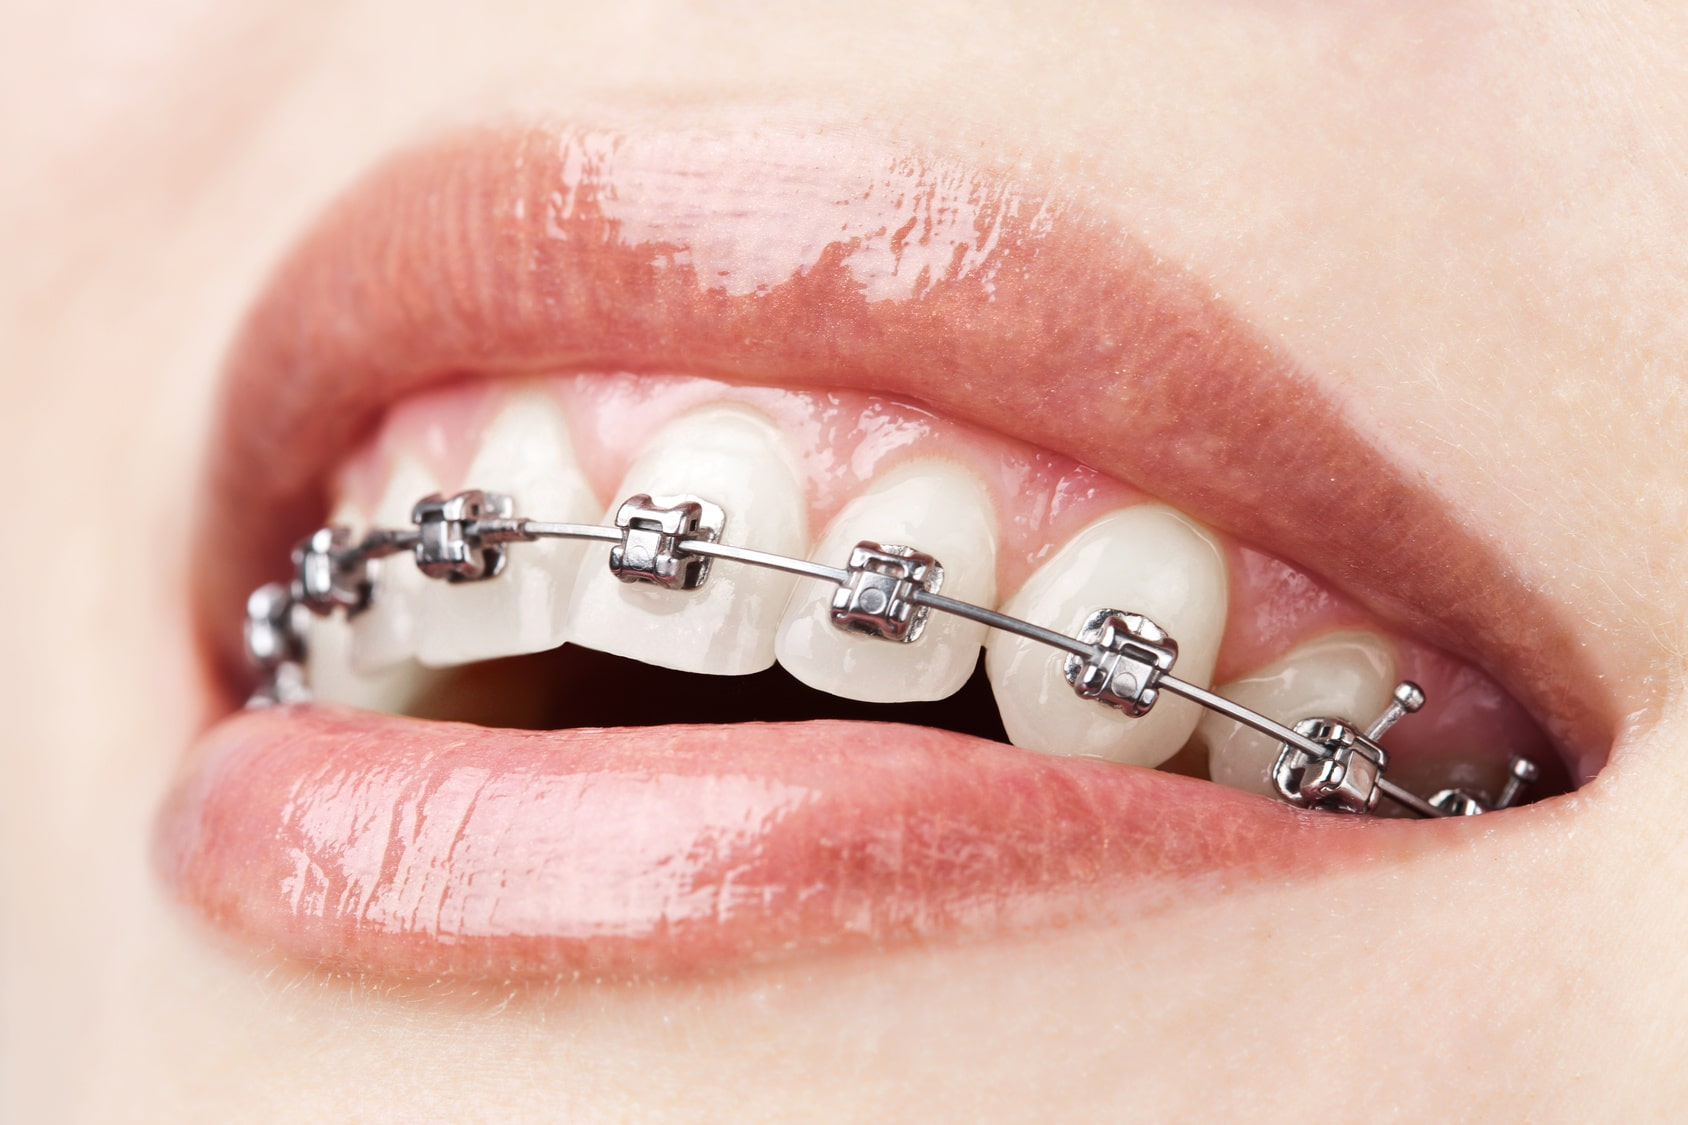 Braces can benefit people of all ages